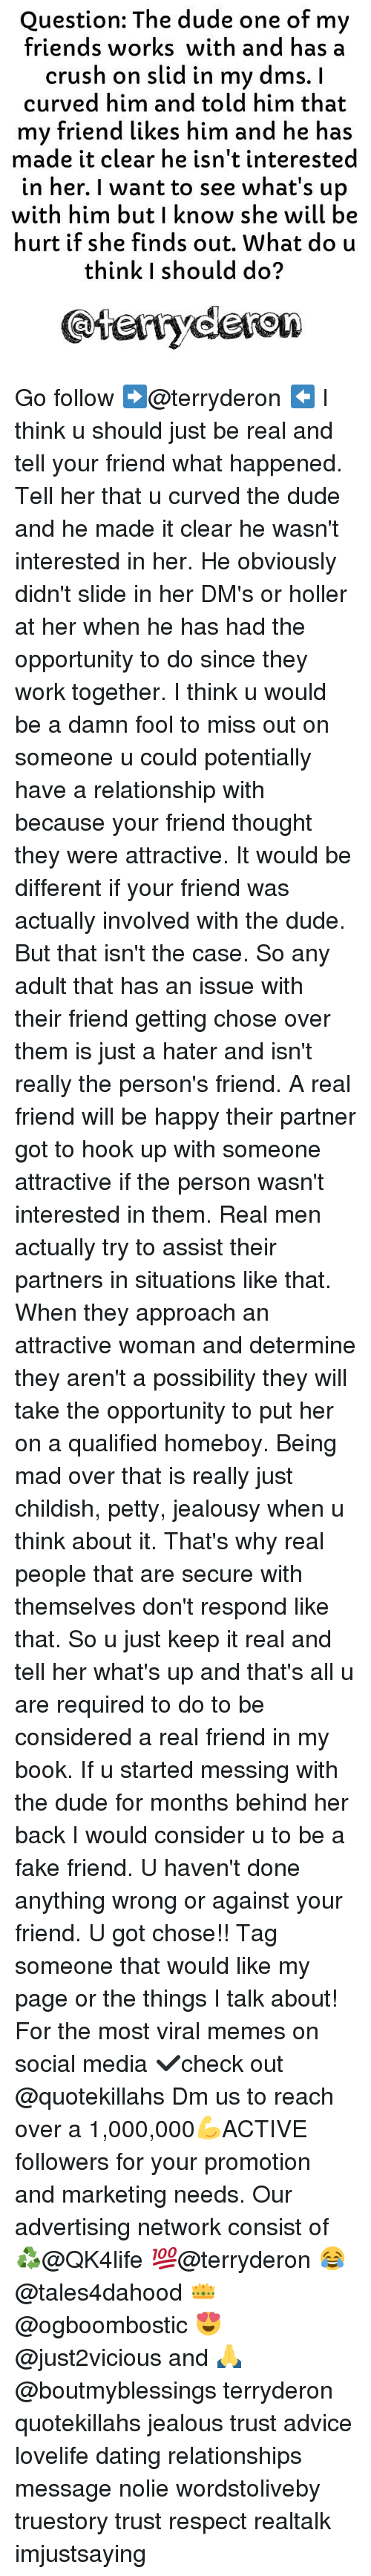 1. He s Extremely Social and Surrounds Himself With Women